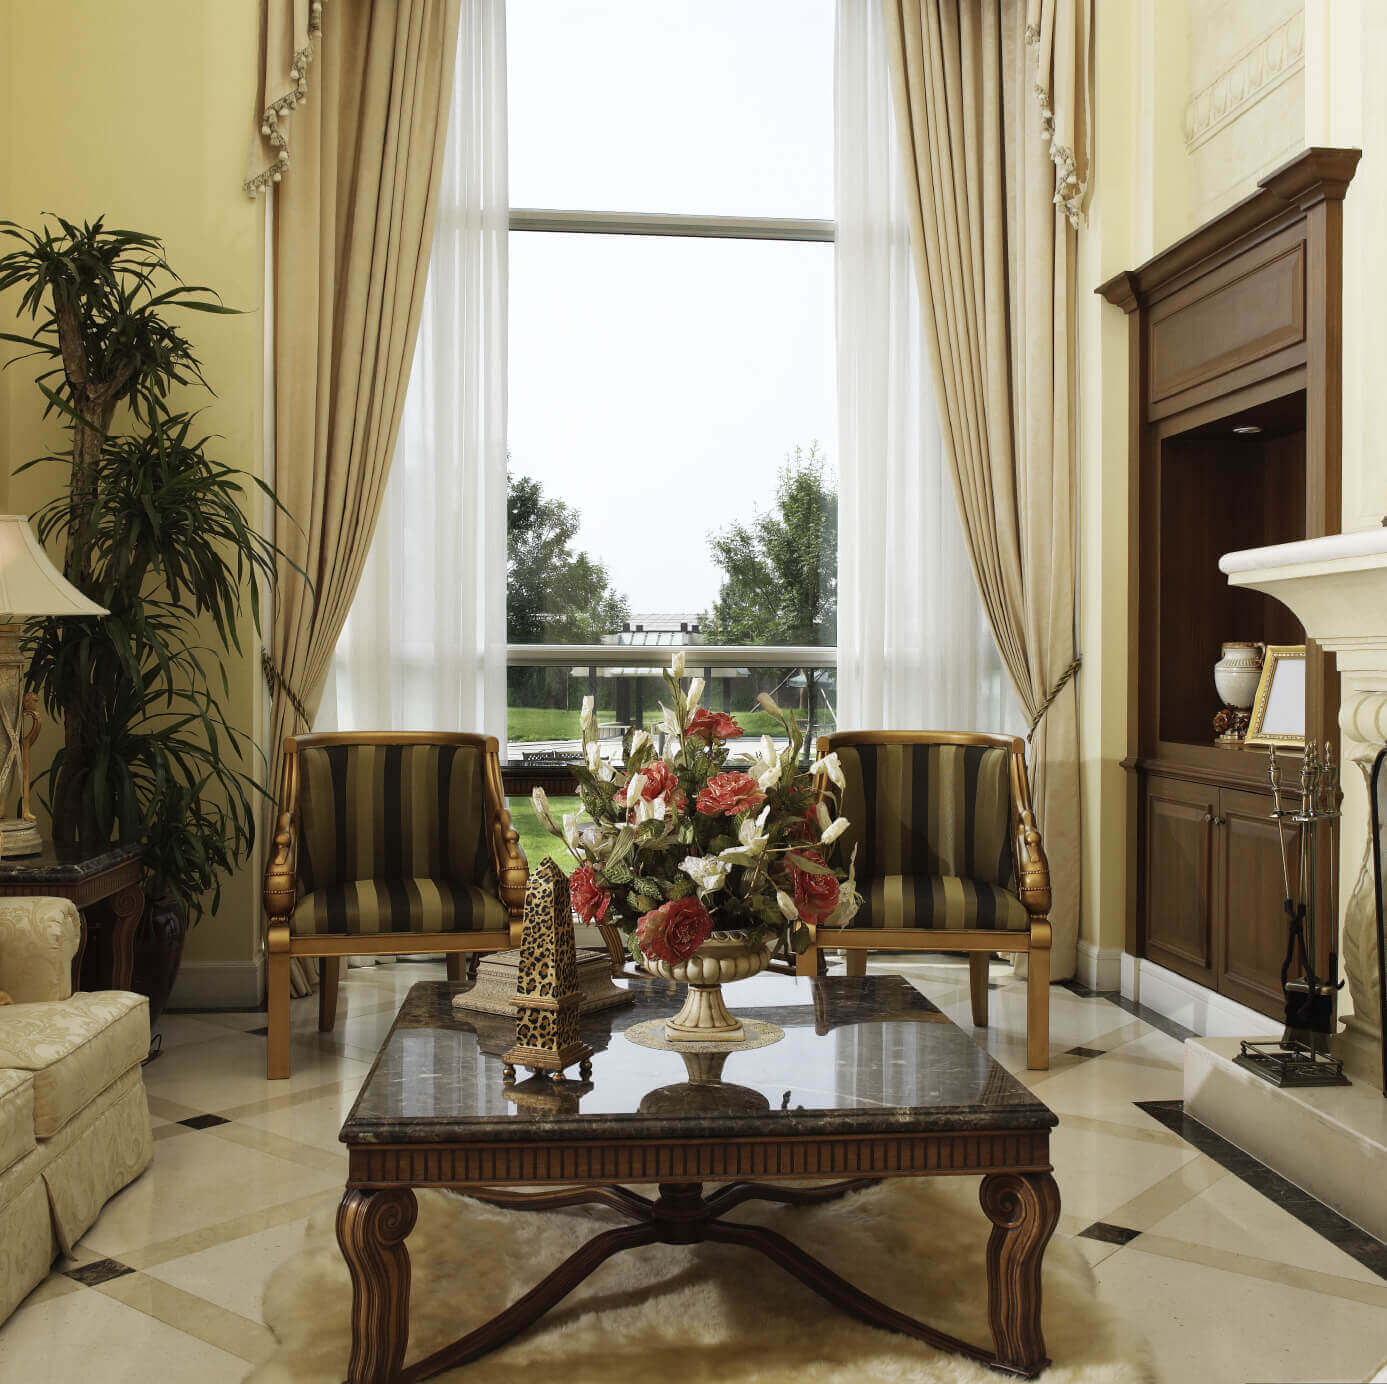 Marble topped, carved wood coffee table commands the center of this marble floored living room, with twin gold stained chairs standing before immense two story window.